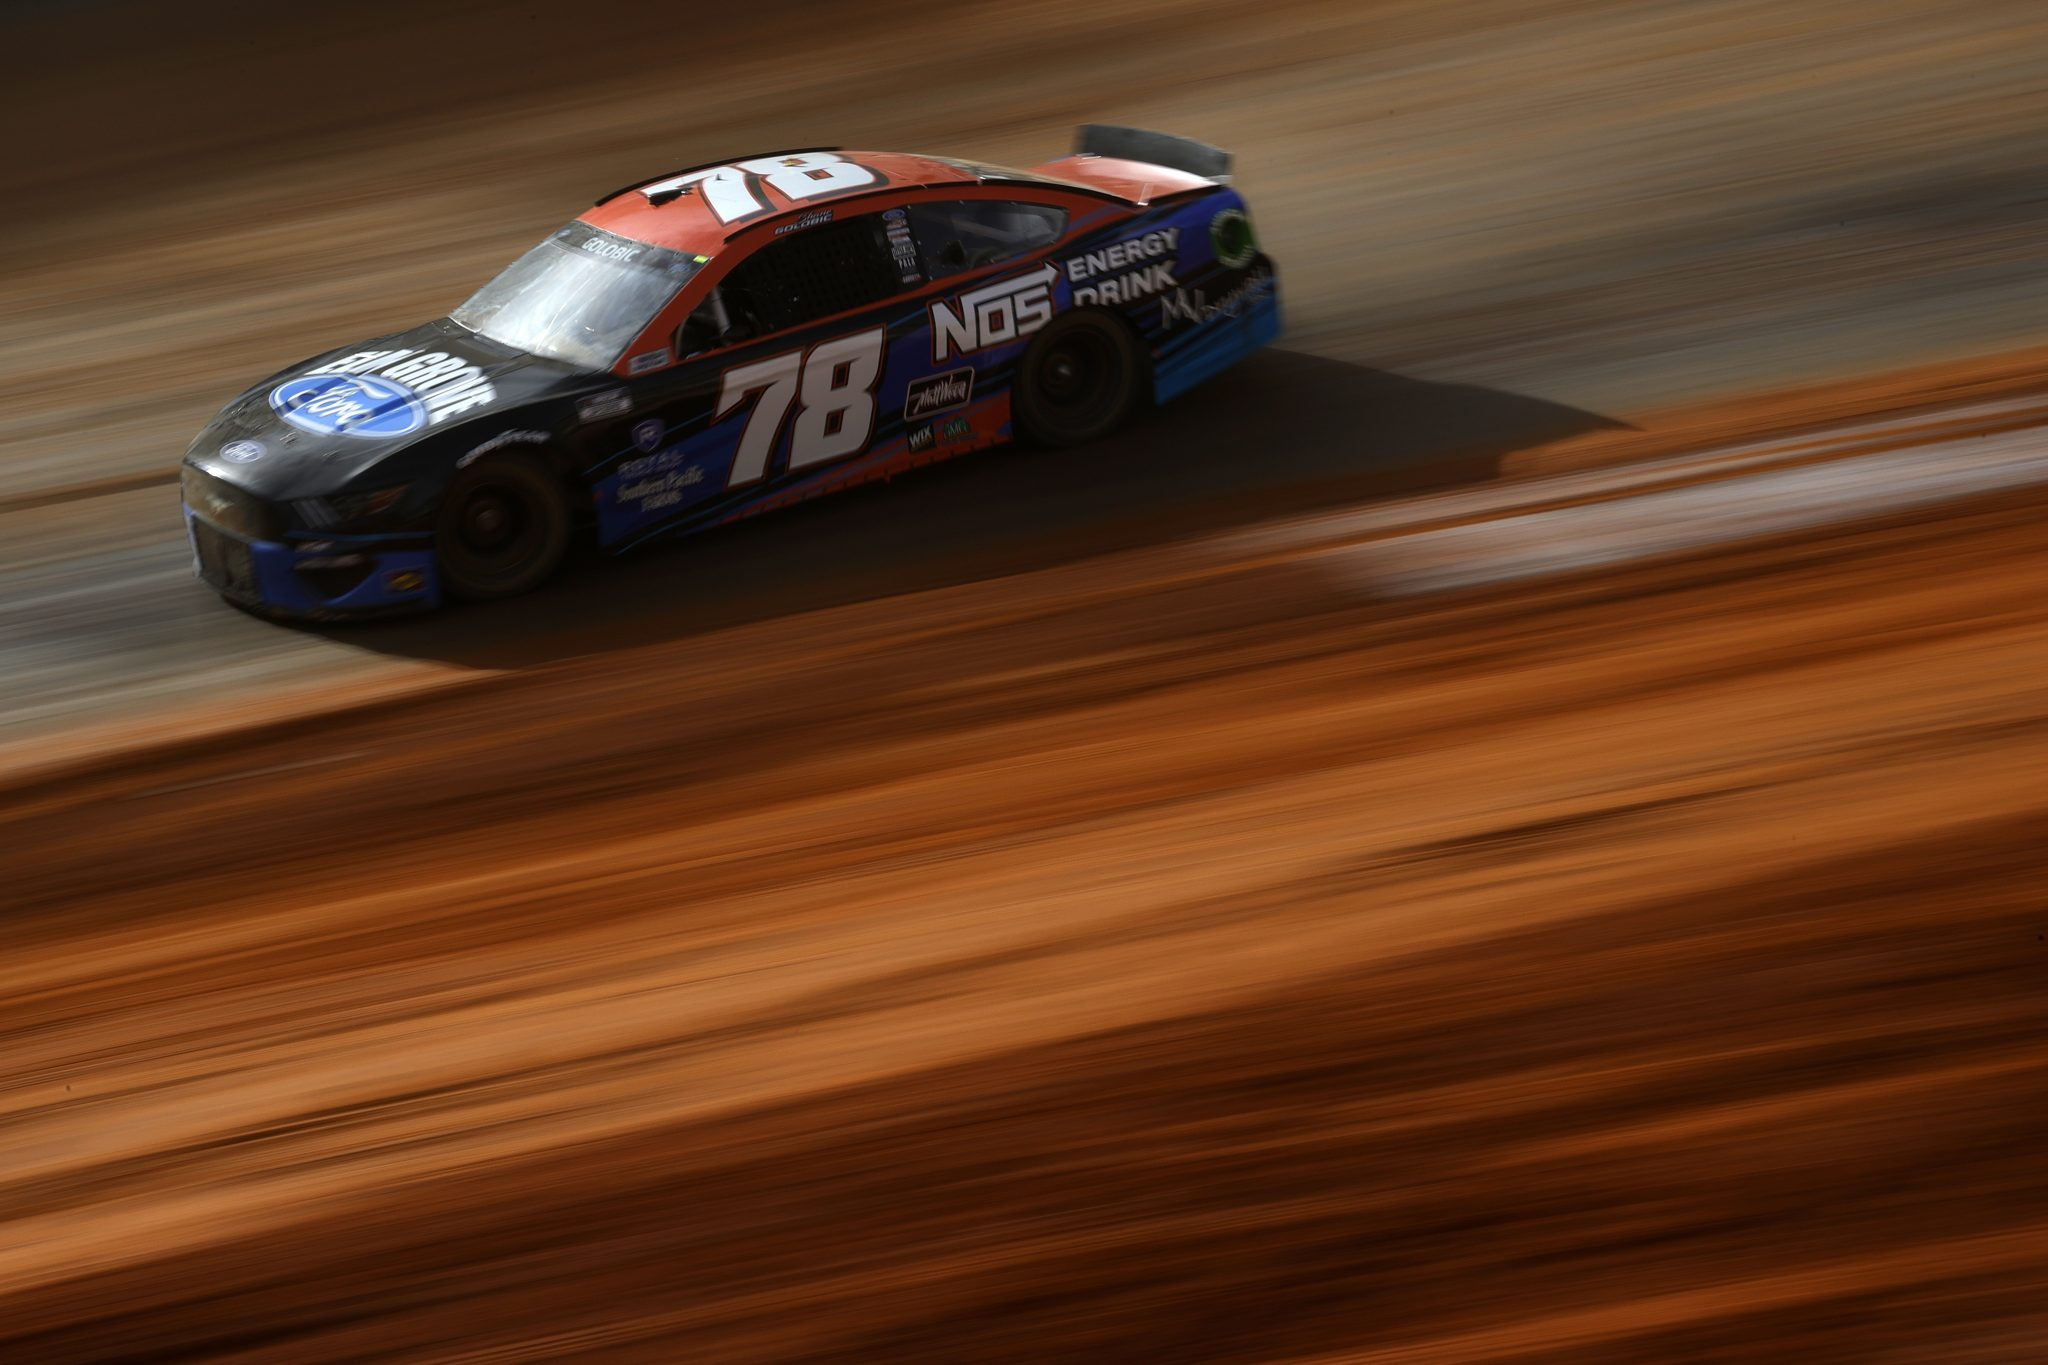 BRISTOL, TENNESSEE - MARCH 26: Shane Golobic, driver of the #78 Elk Grove Ford/NOS Energy Ford, drives during practice for the NASCAR Cup Series Food City Dirt Race at Bristol Motor Speedway on March 26, 2021 in Bristol, Tennessee. (Photo by Chris Graythen/Getty Images) | Getty Images